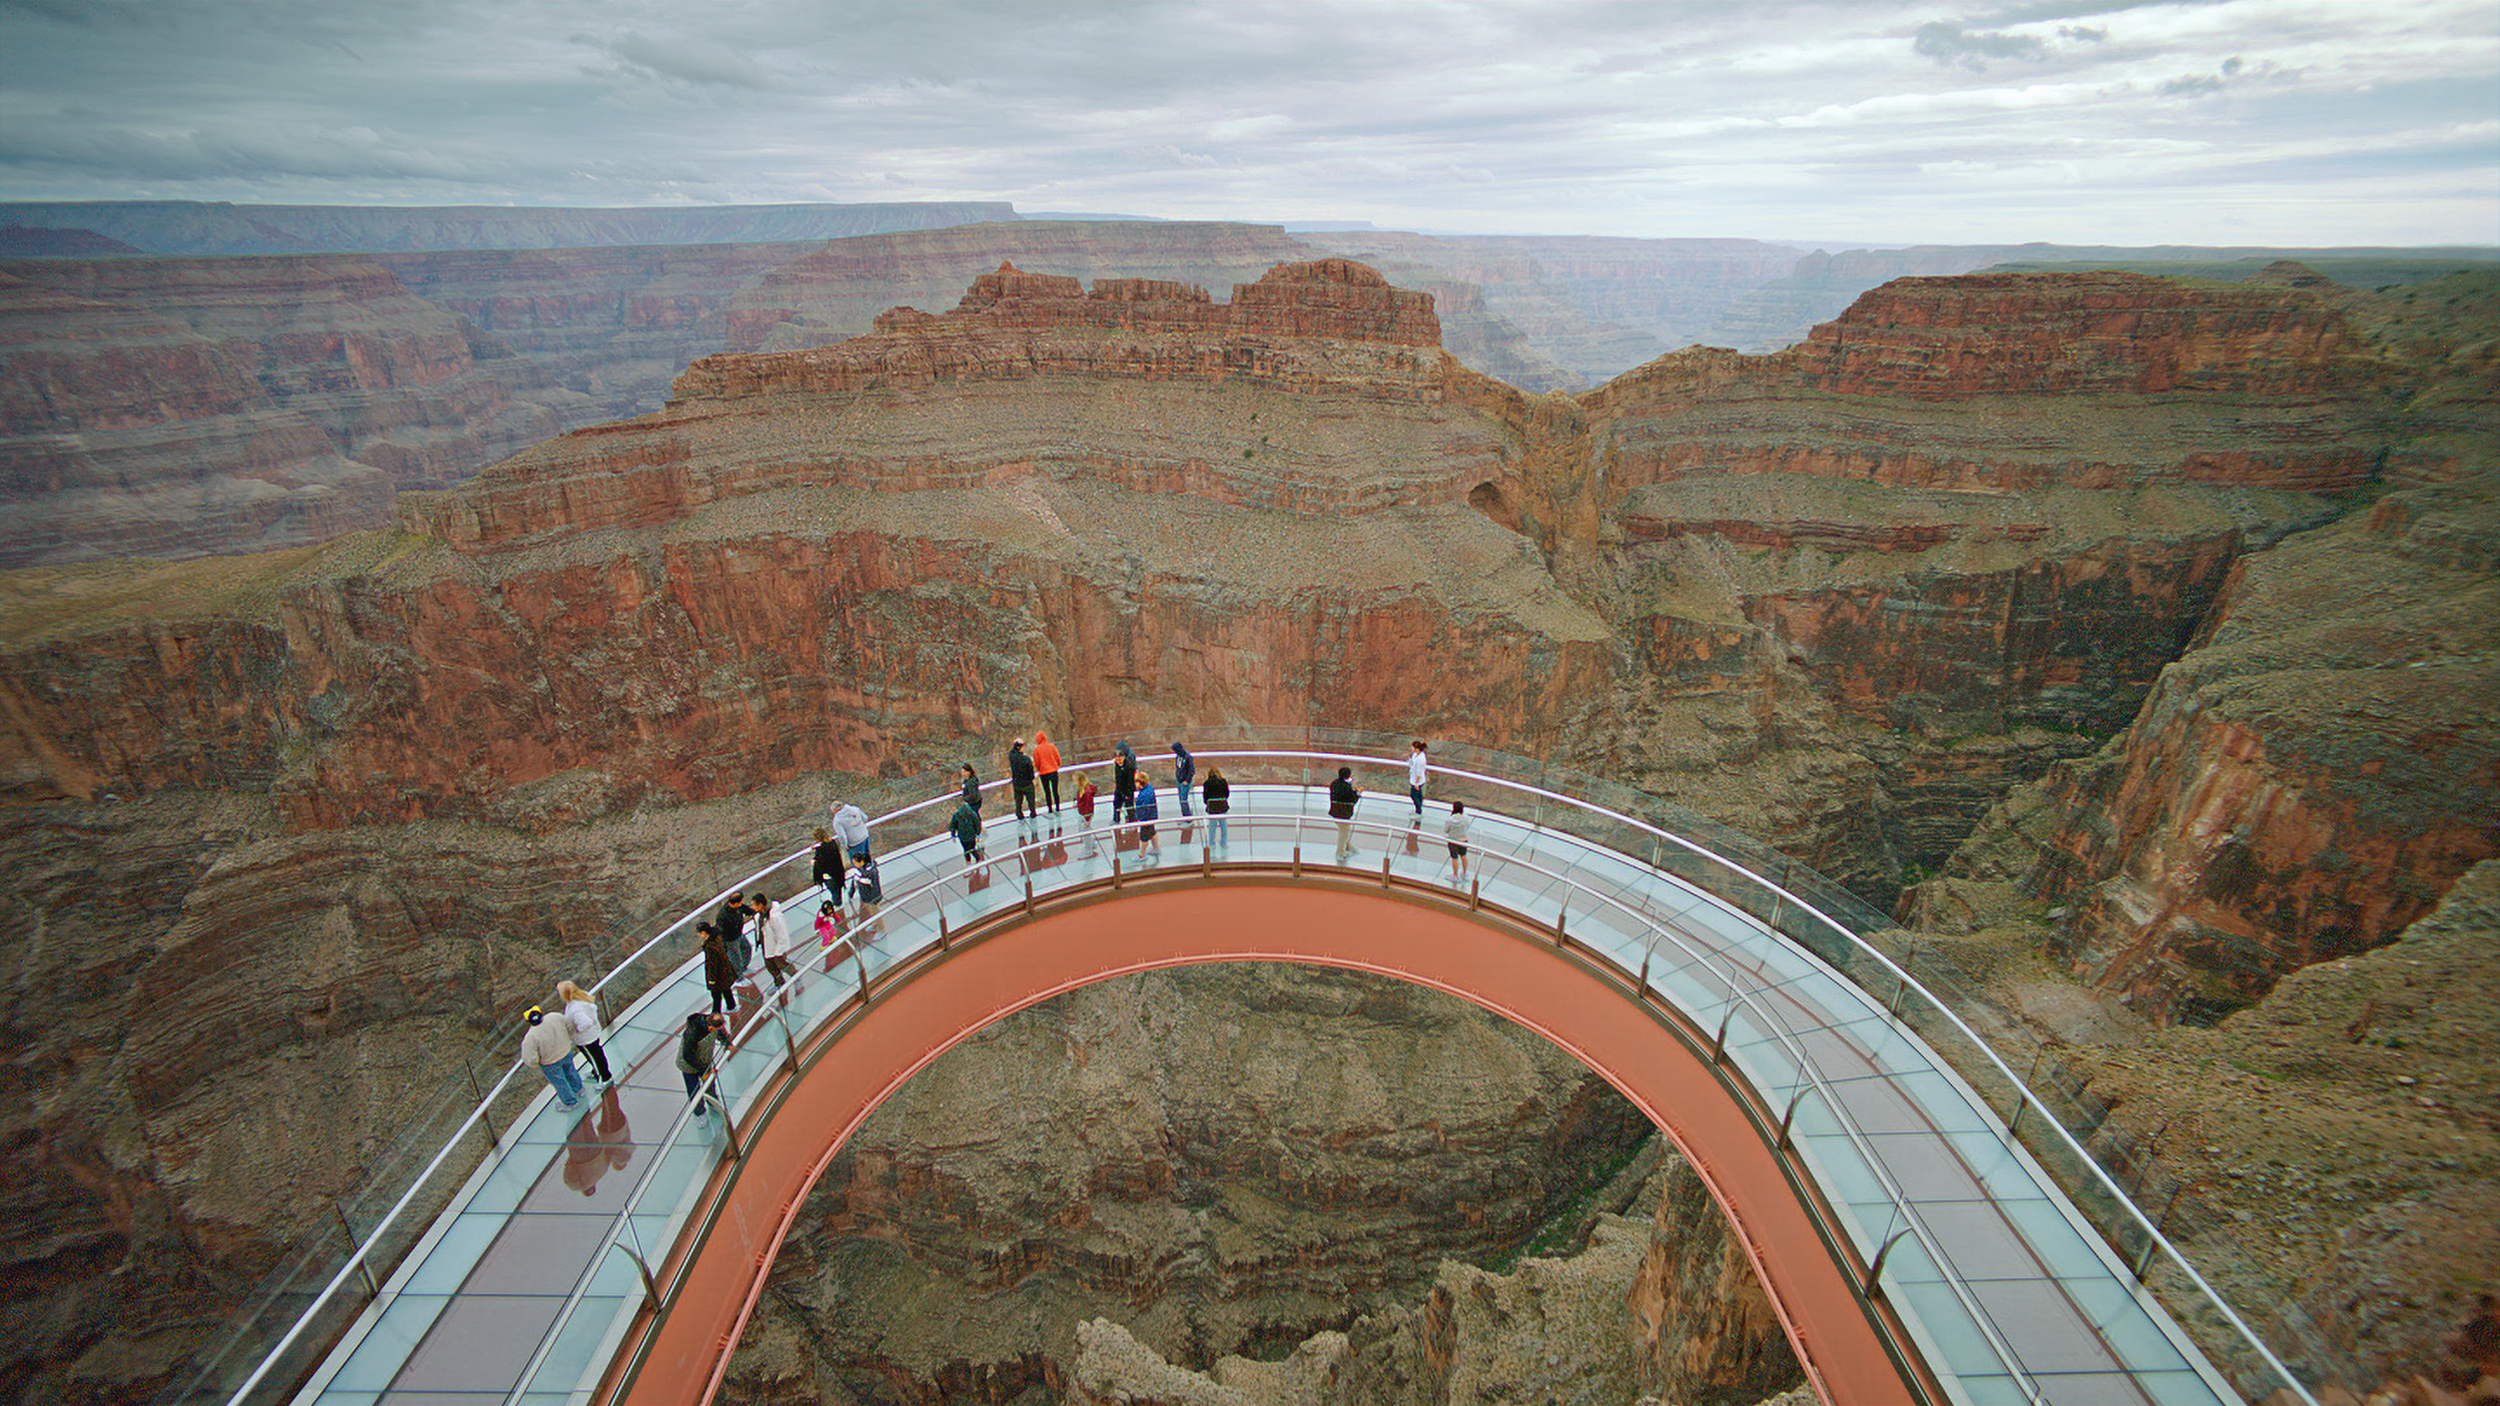 Grand Canyon Skywalk suspends people high above canyon floor.